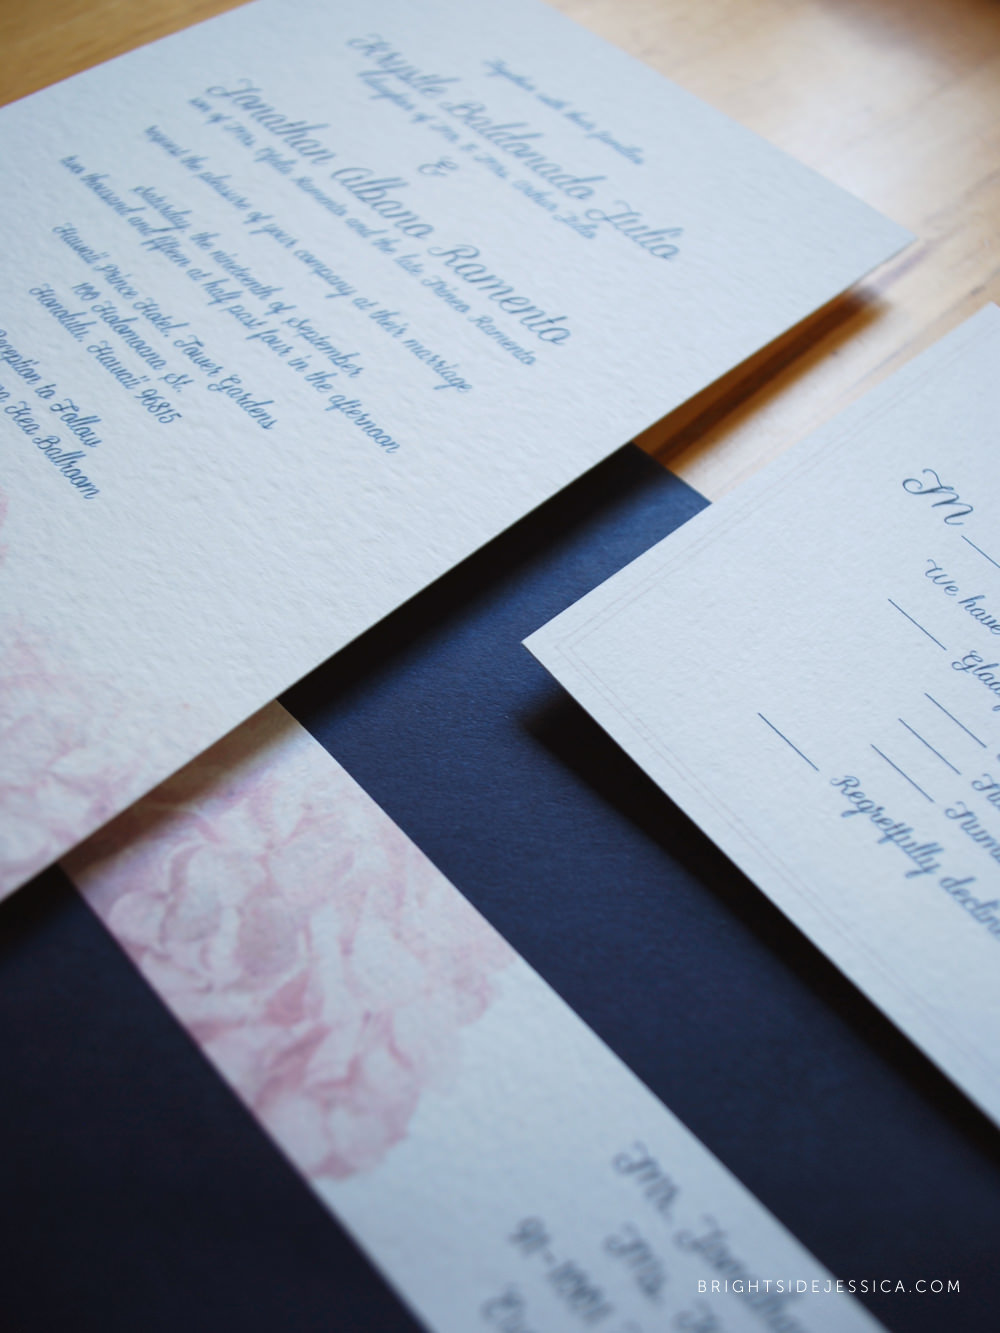 jessicapaloladesign_kj-wedding-stationery_3.jpg